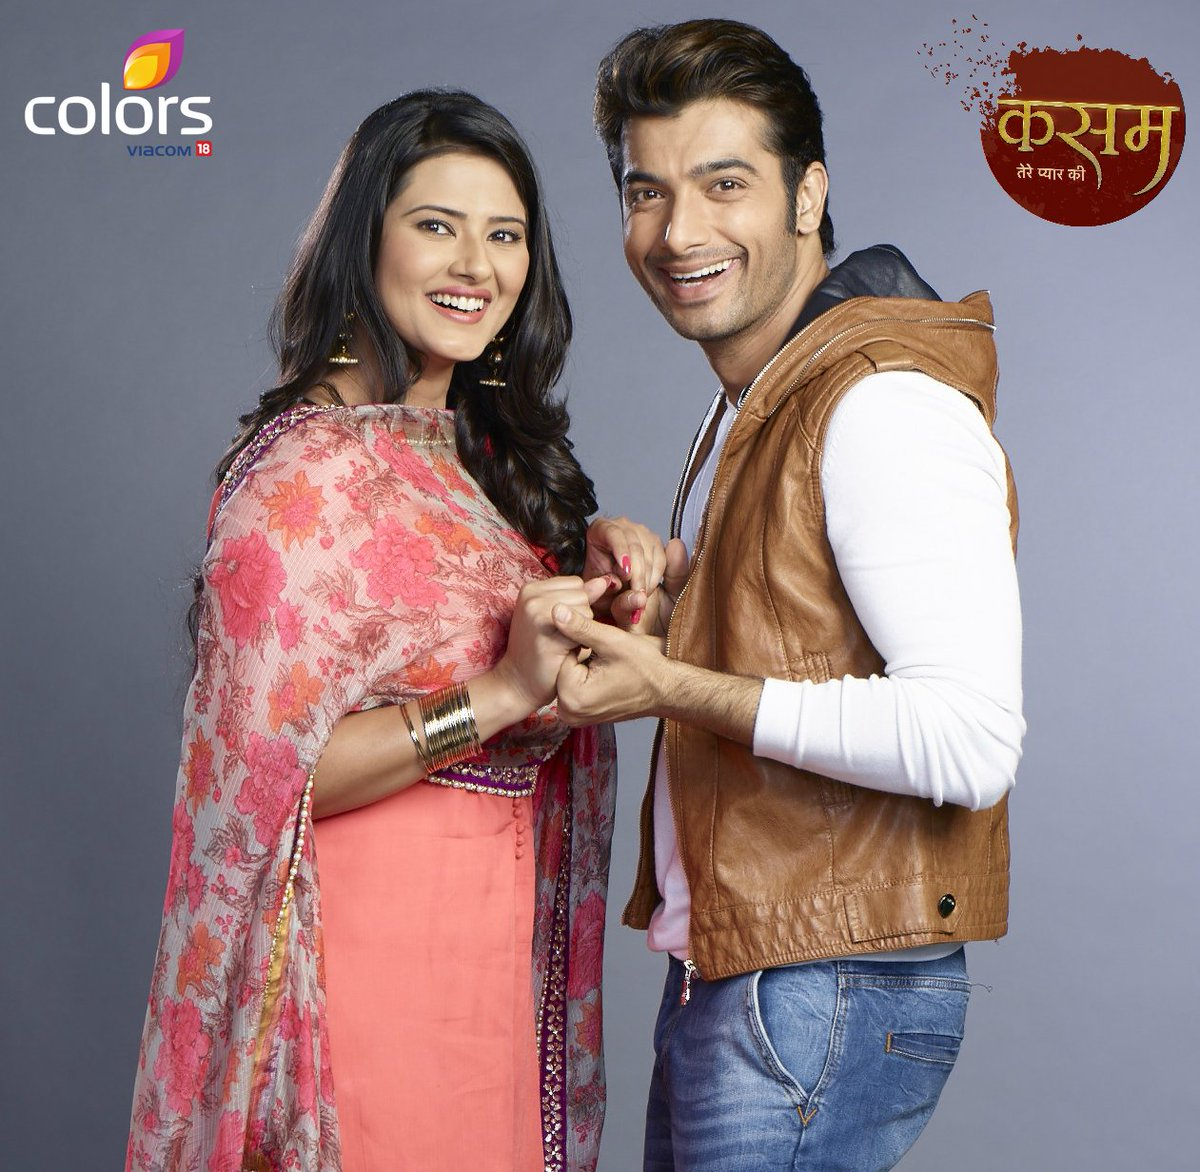 Images of Rishi and Tanu in Kasam on Colors , Kratika Sengar and Ssharad Malhotra in Kasam HD Image